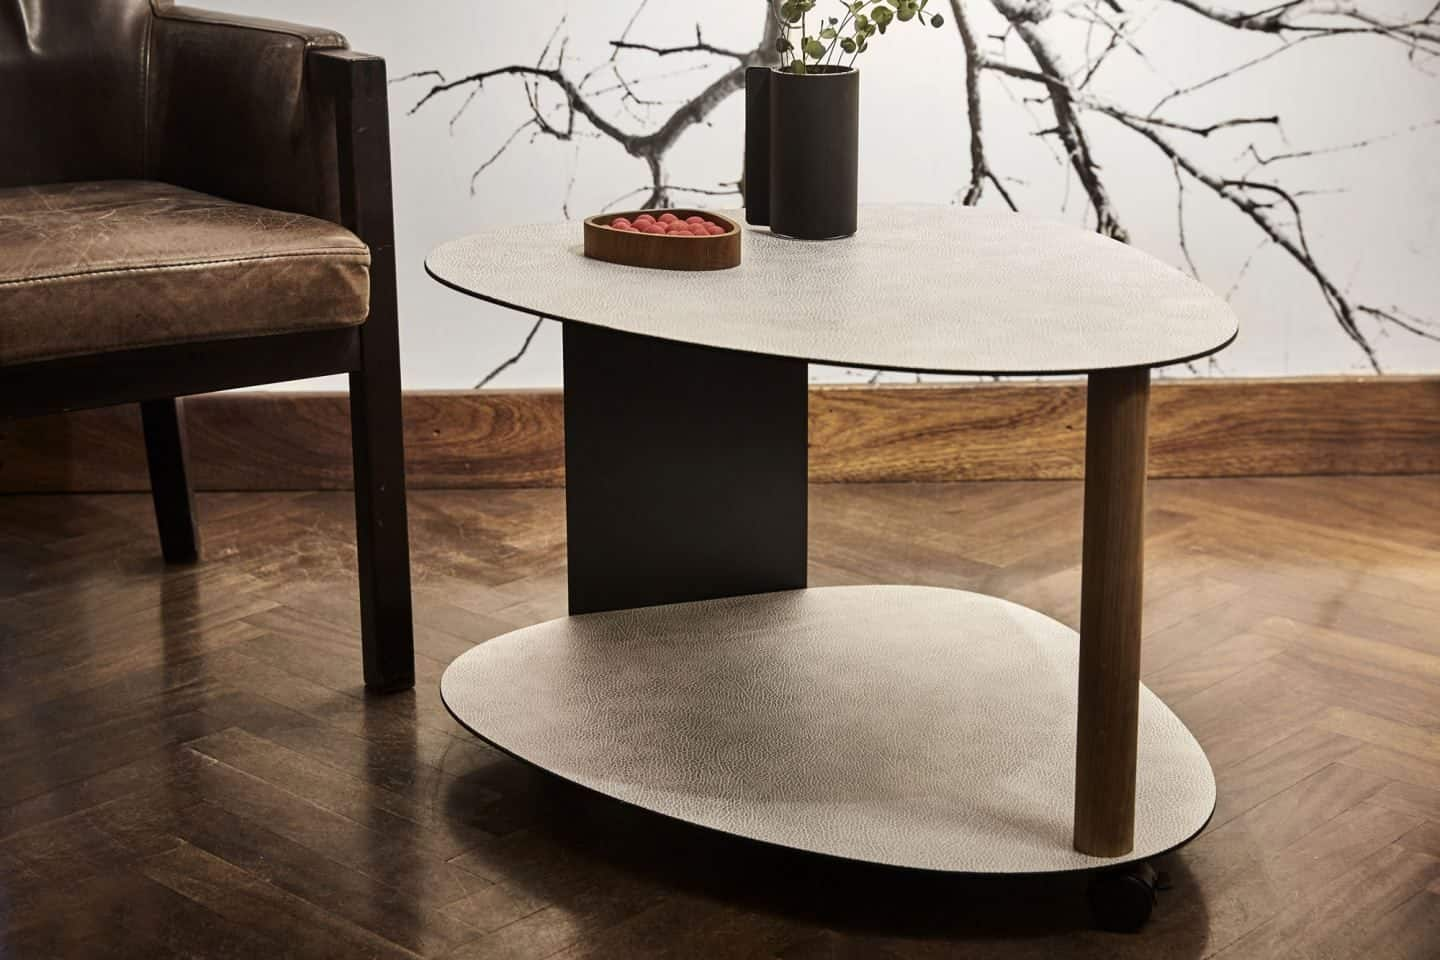 Recycled leather two-tier side table from LIND DNA